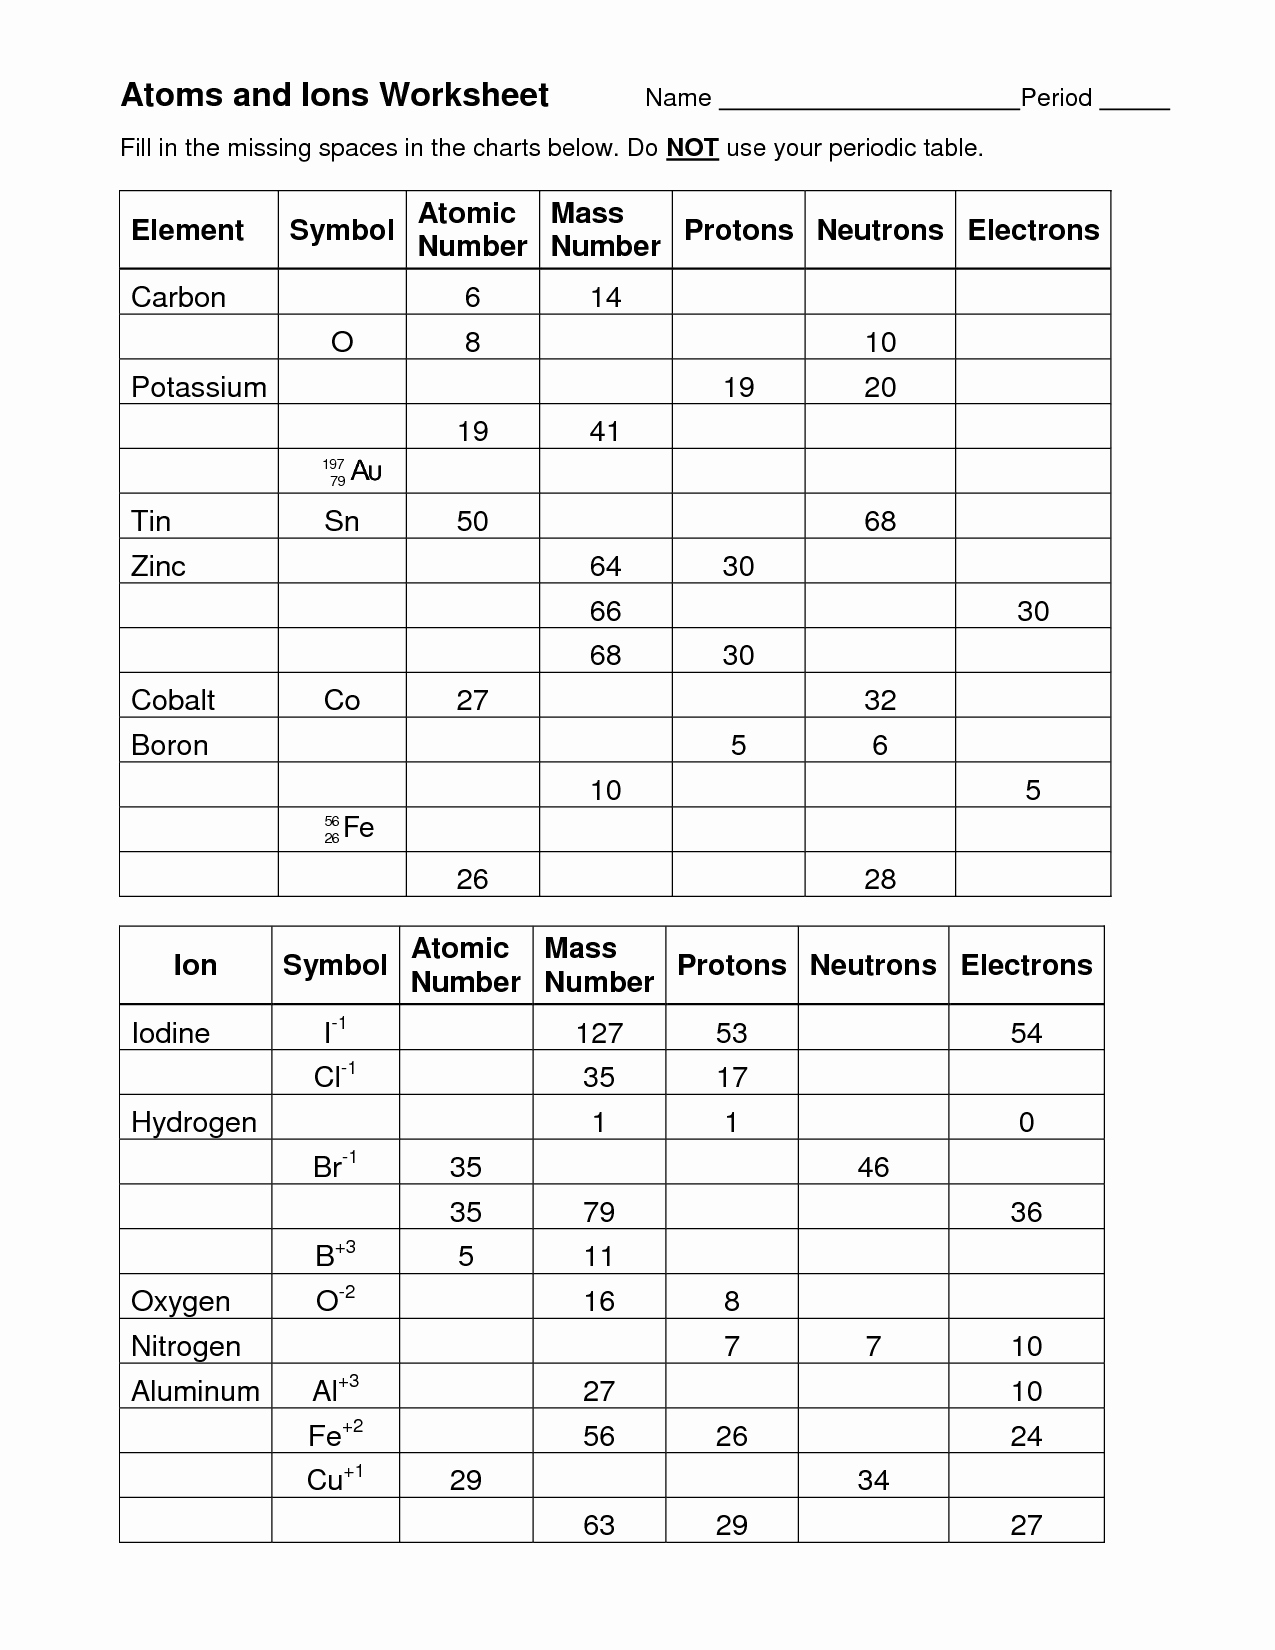 Atoms and isotopes Worksheet Answers Luxury 13 Best Of Element Symbols Worksheet Answer Key